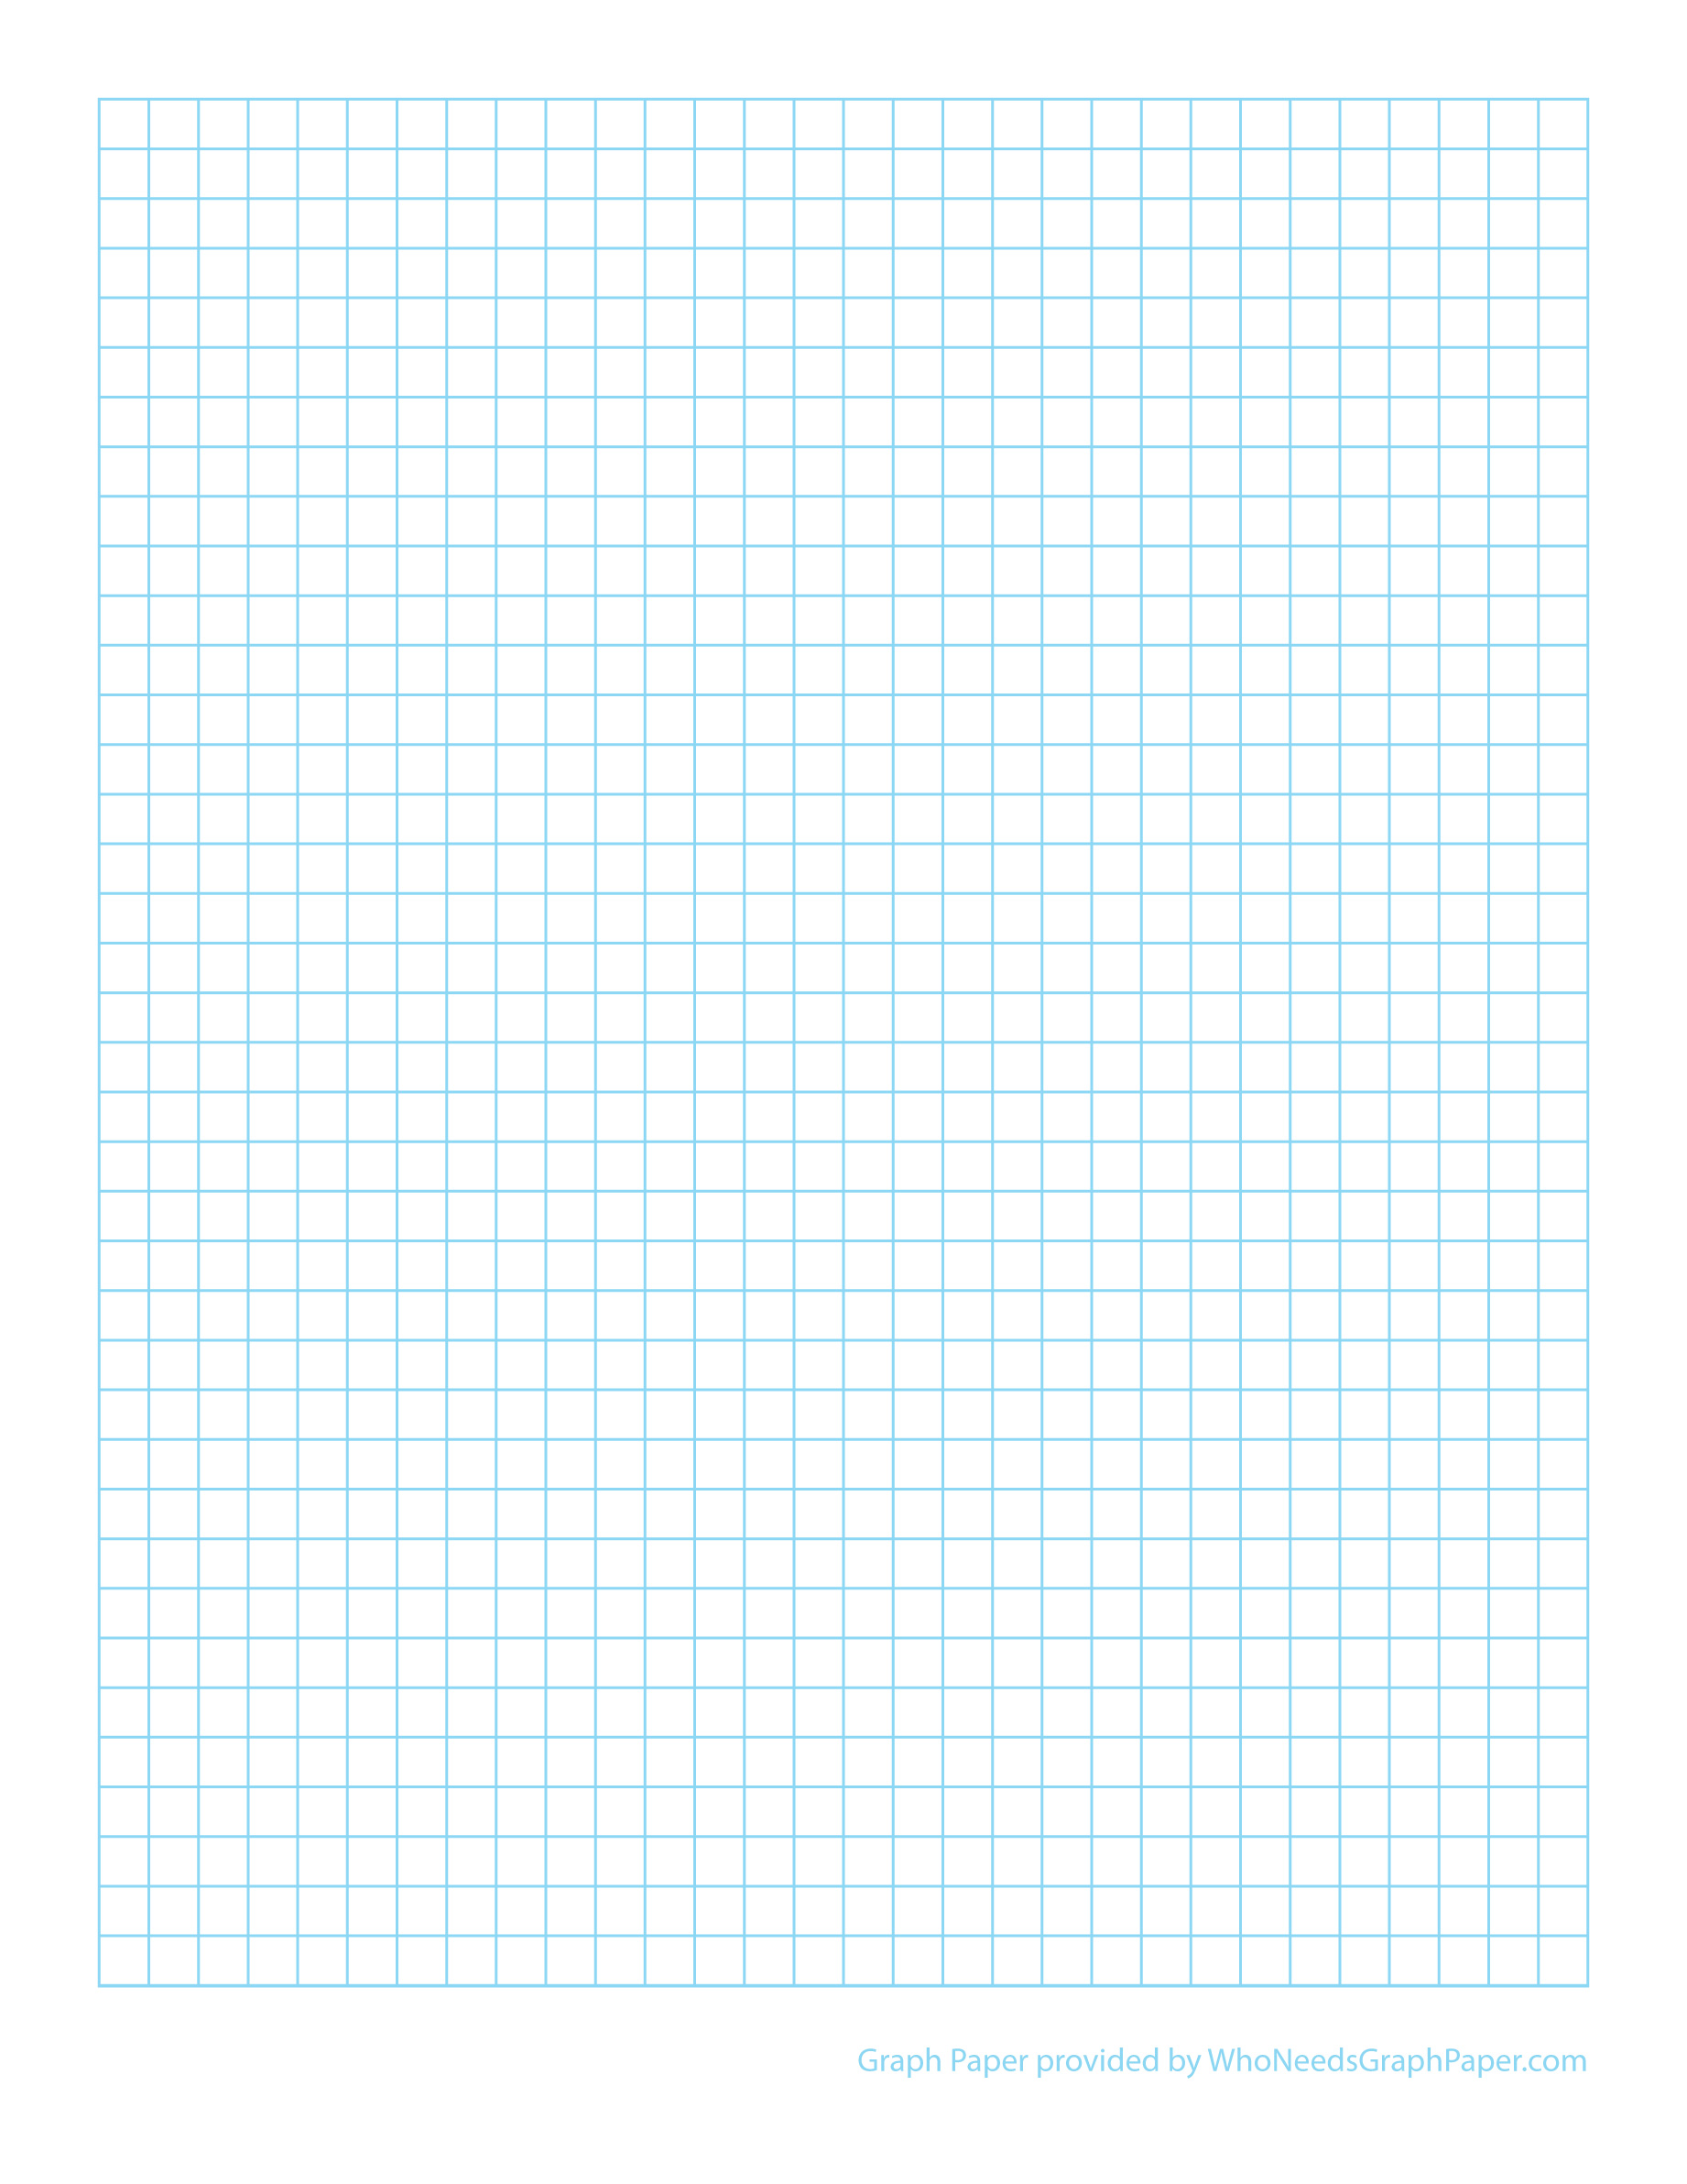 printable graph math paper - Lamasa.jasonkellyphoto.co